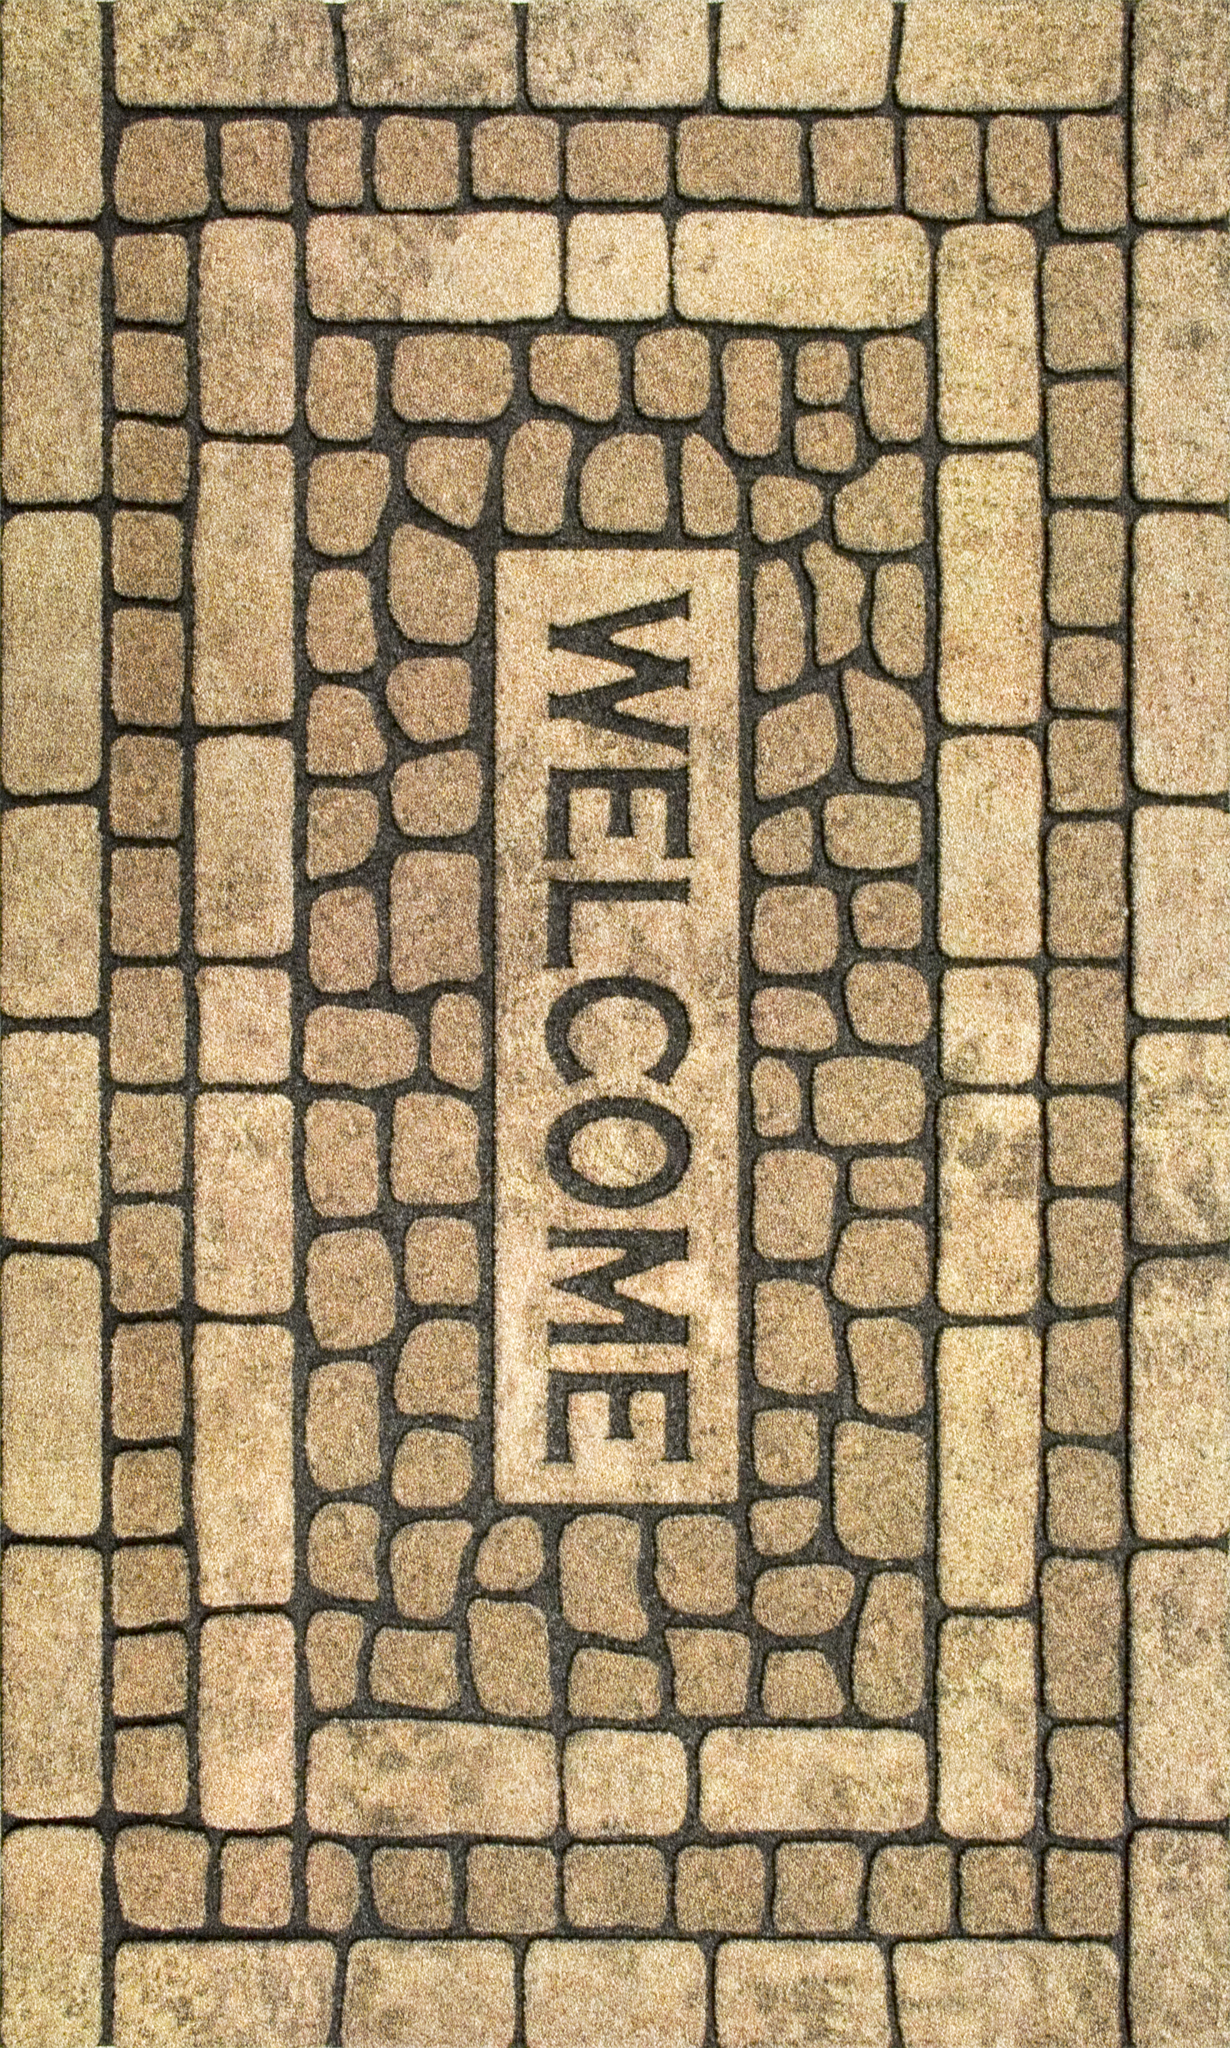 Bricks Pave Mat.jpg